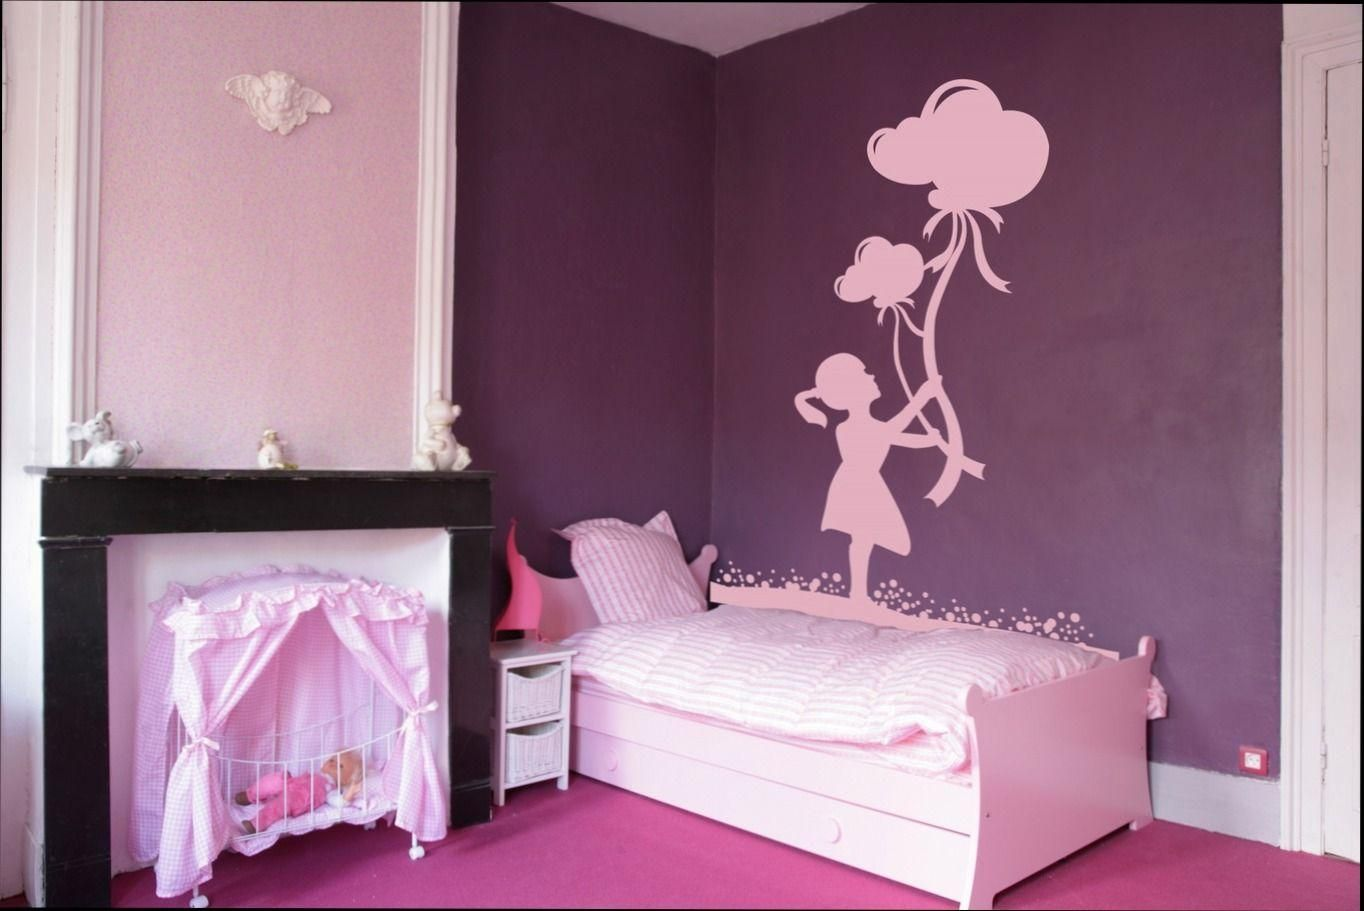 Awesome Deco Chambre Fille 10 Ans that you must know, You